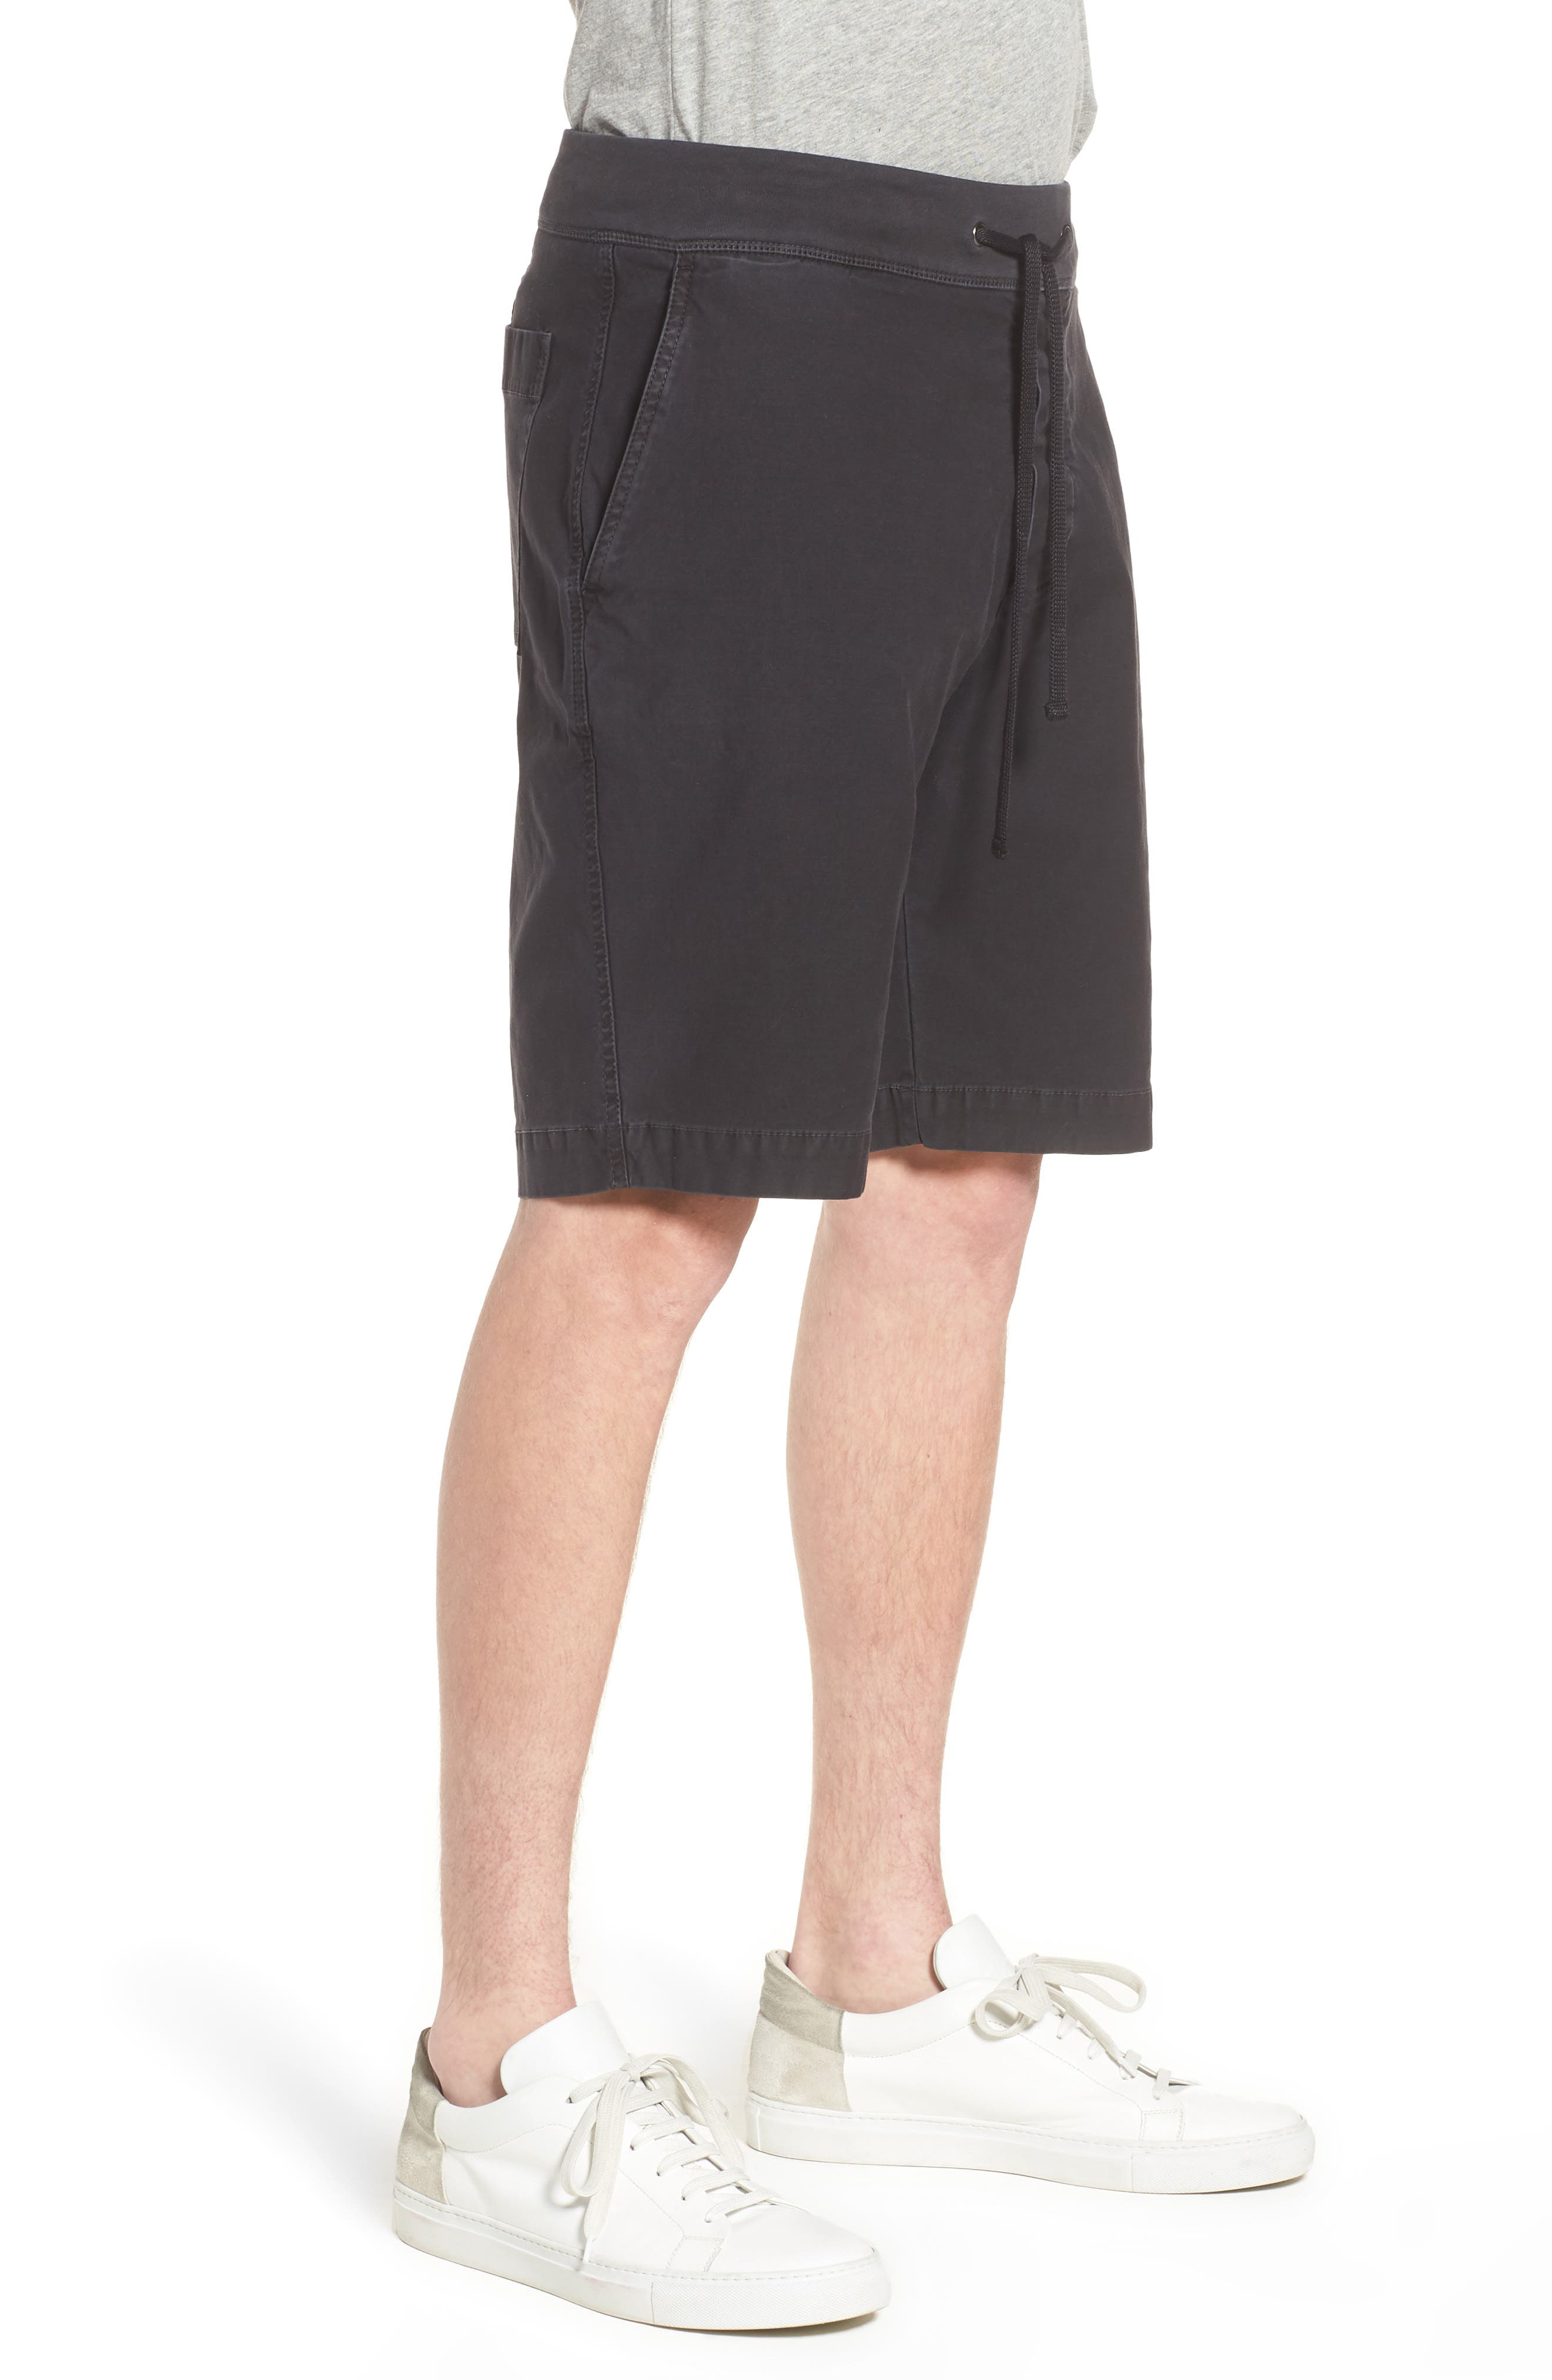 JAMES PERSE,                             Compact Stretch Cotton Shorts,                             Alternate thumbnail 3, color,                             020